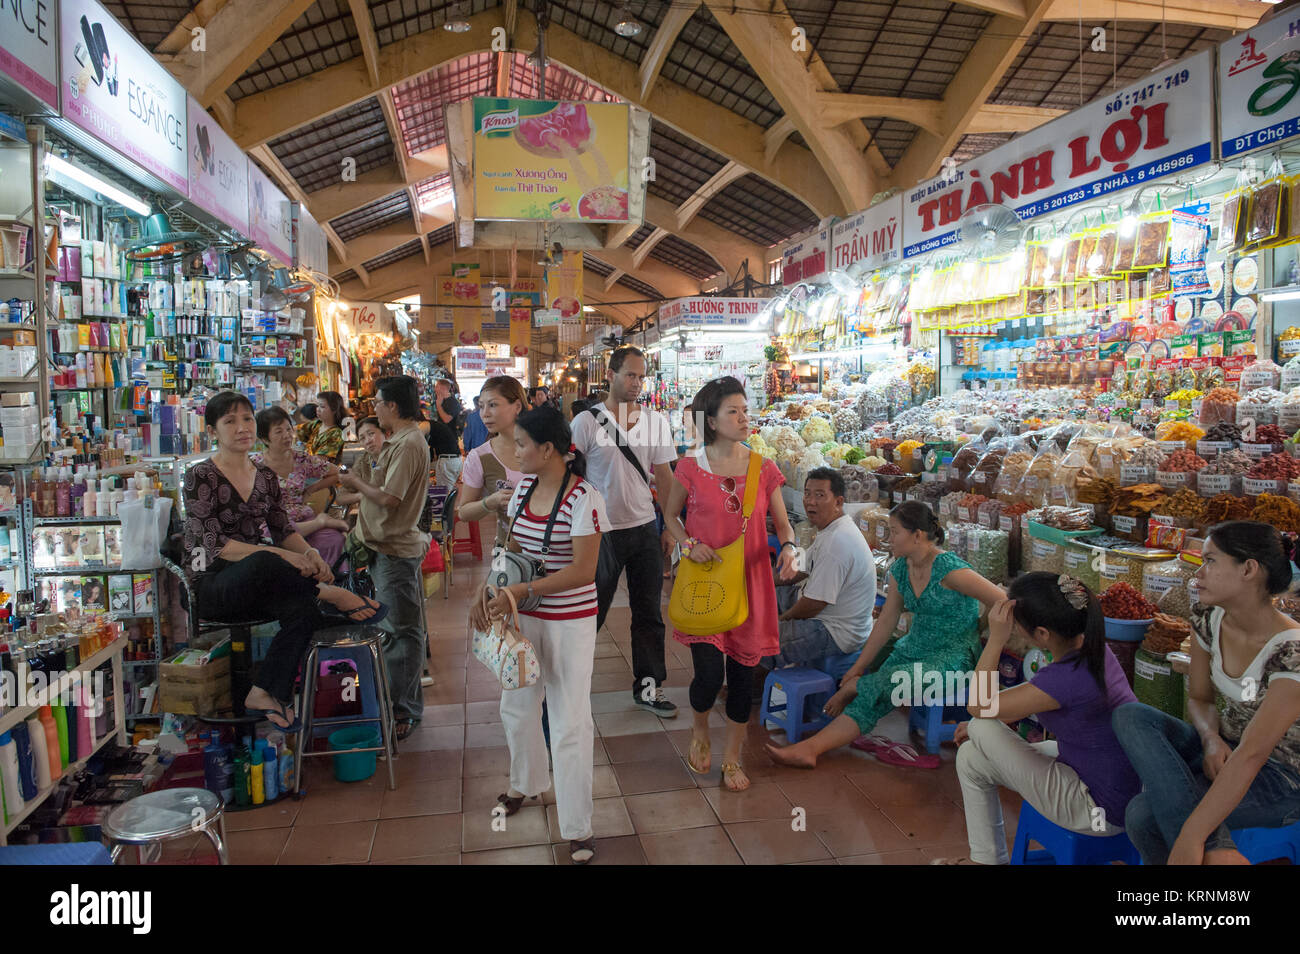 Ben Thanh Market in Ho Chi Minh city. This bustling market is one of the most famous in former Saigon. - Stock Image